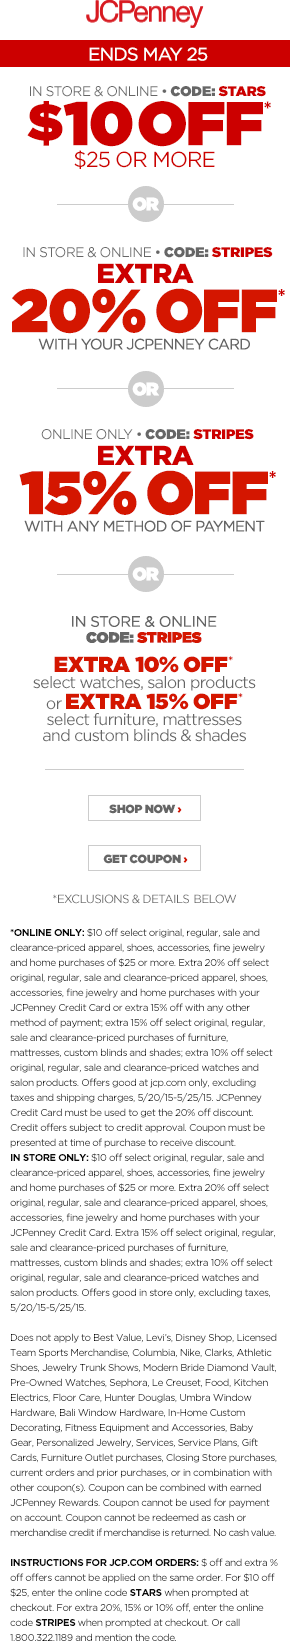 JCPenney Coupon January 2017 $10 off $25 at JCPenney, or online via promo code STARS